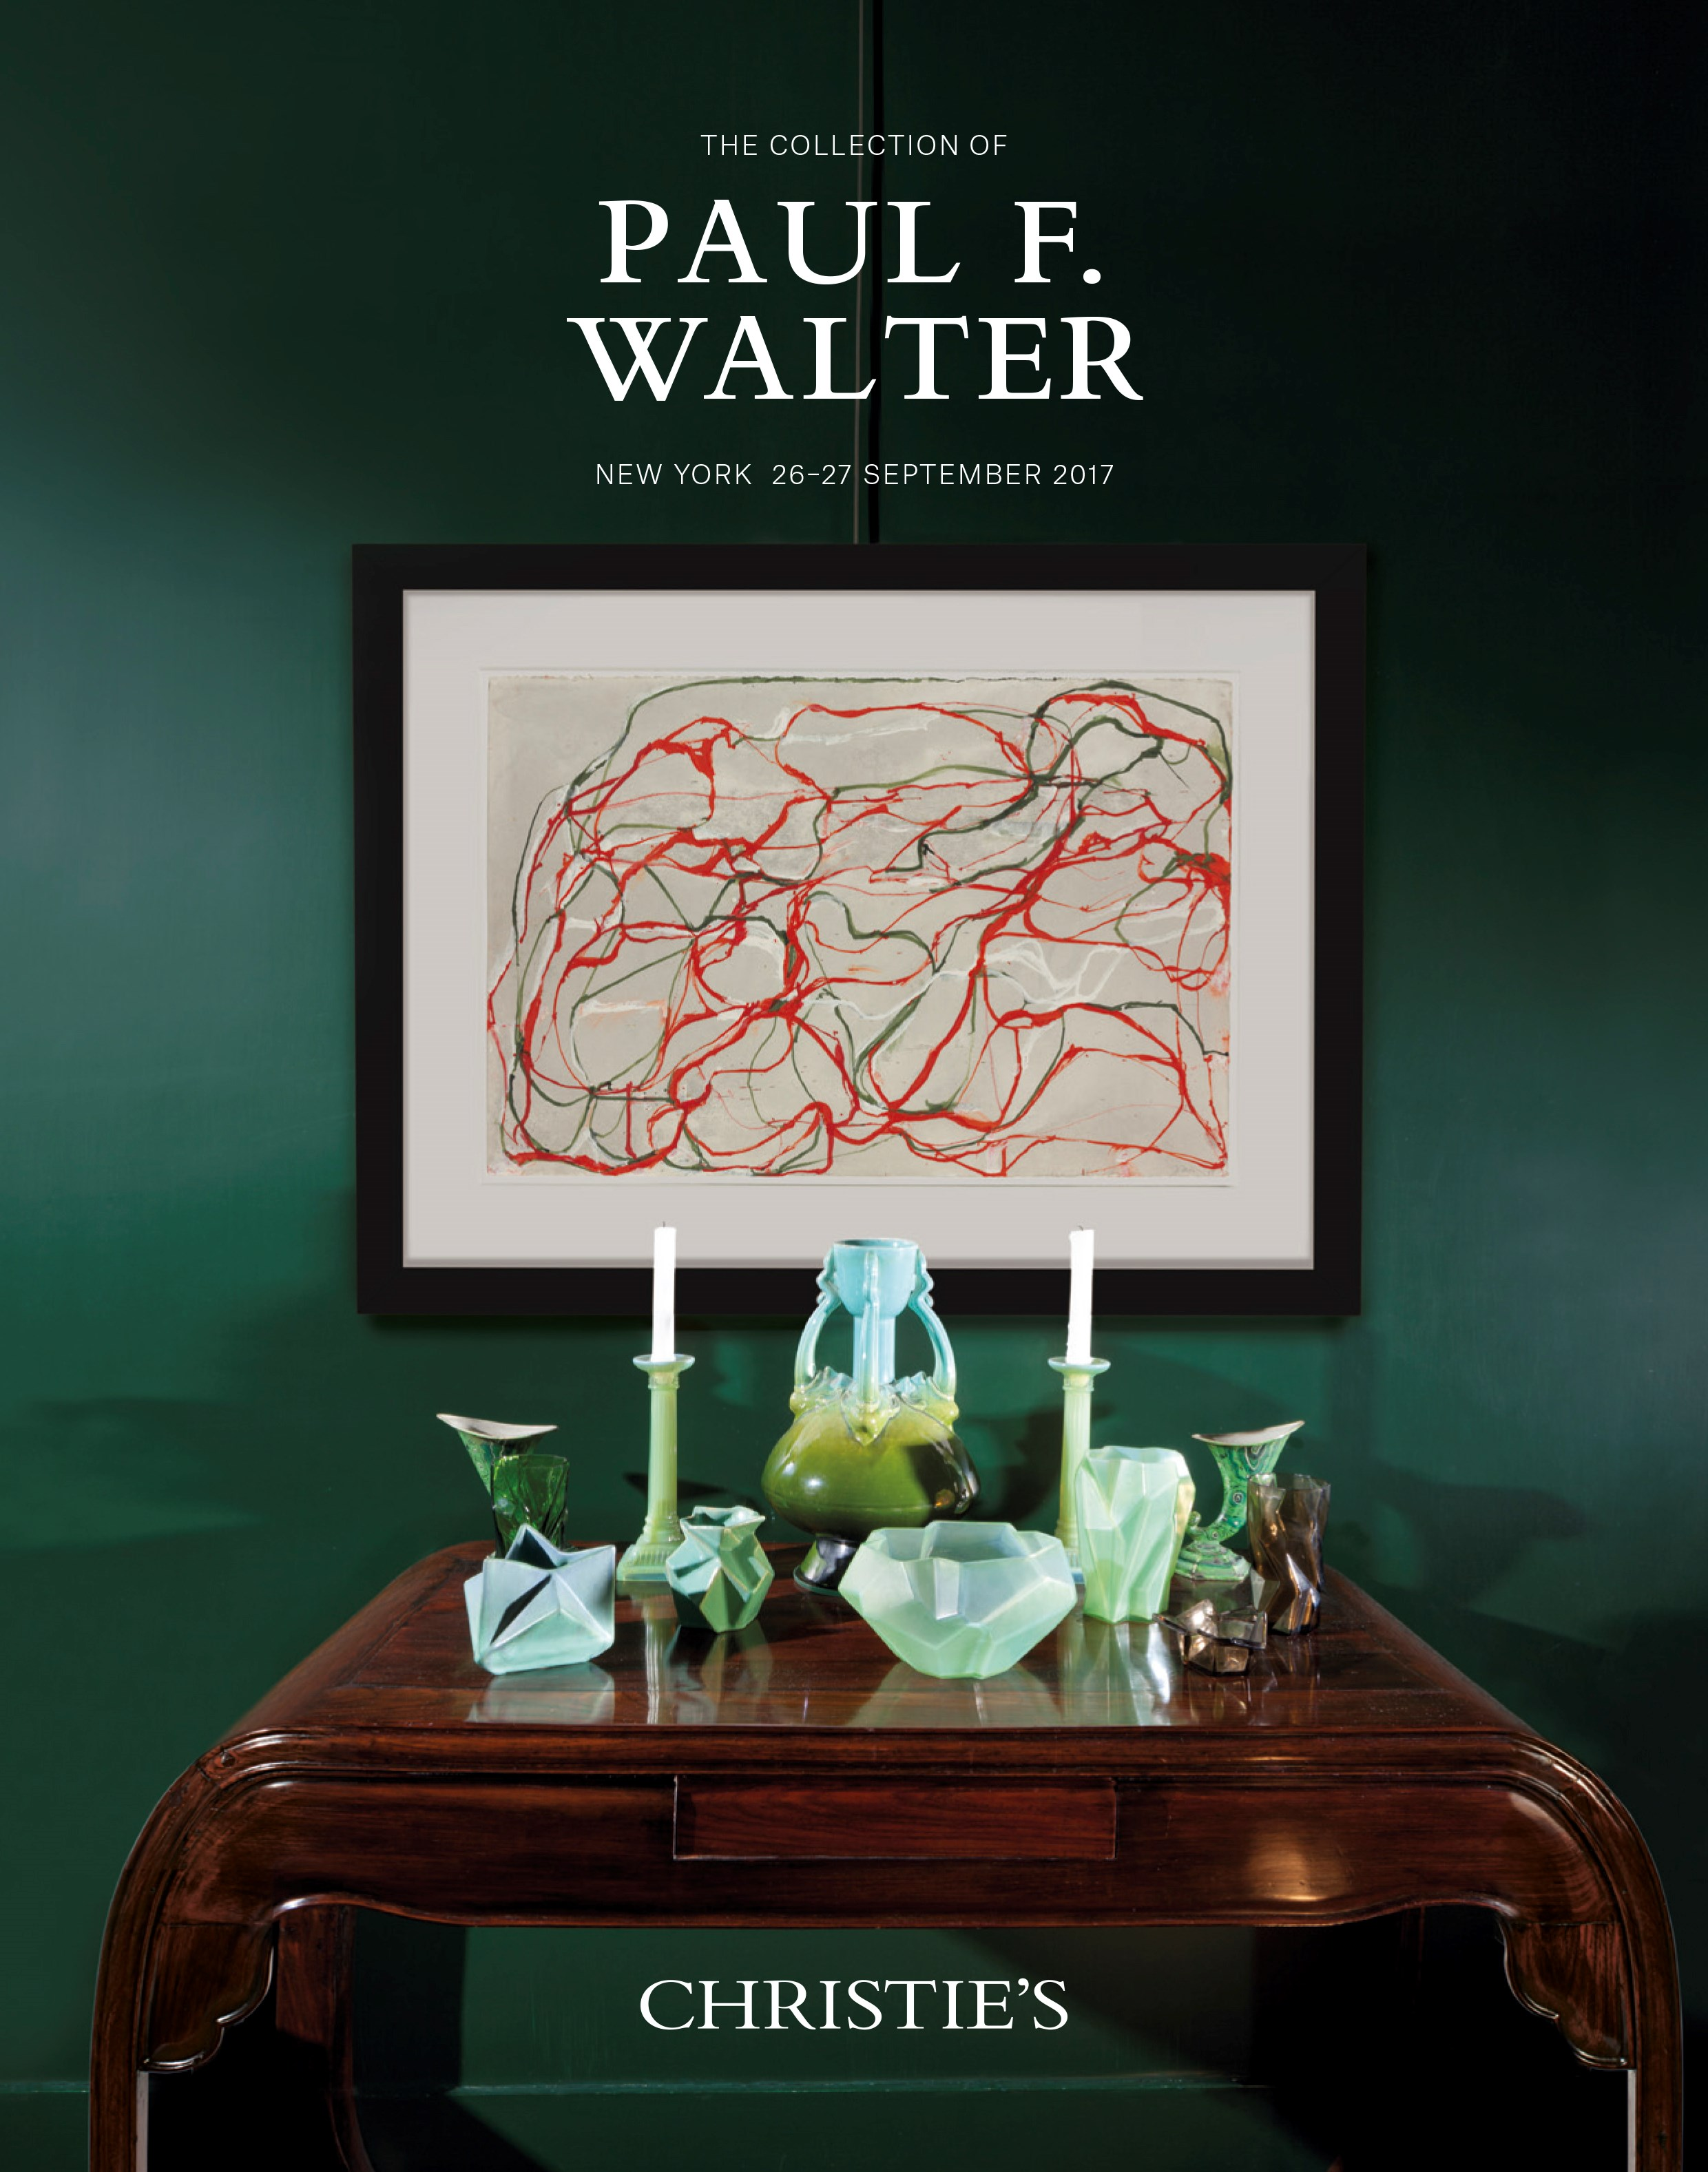 The Collection of Paul F. Walt auction at Christies